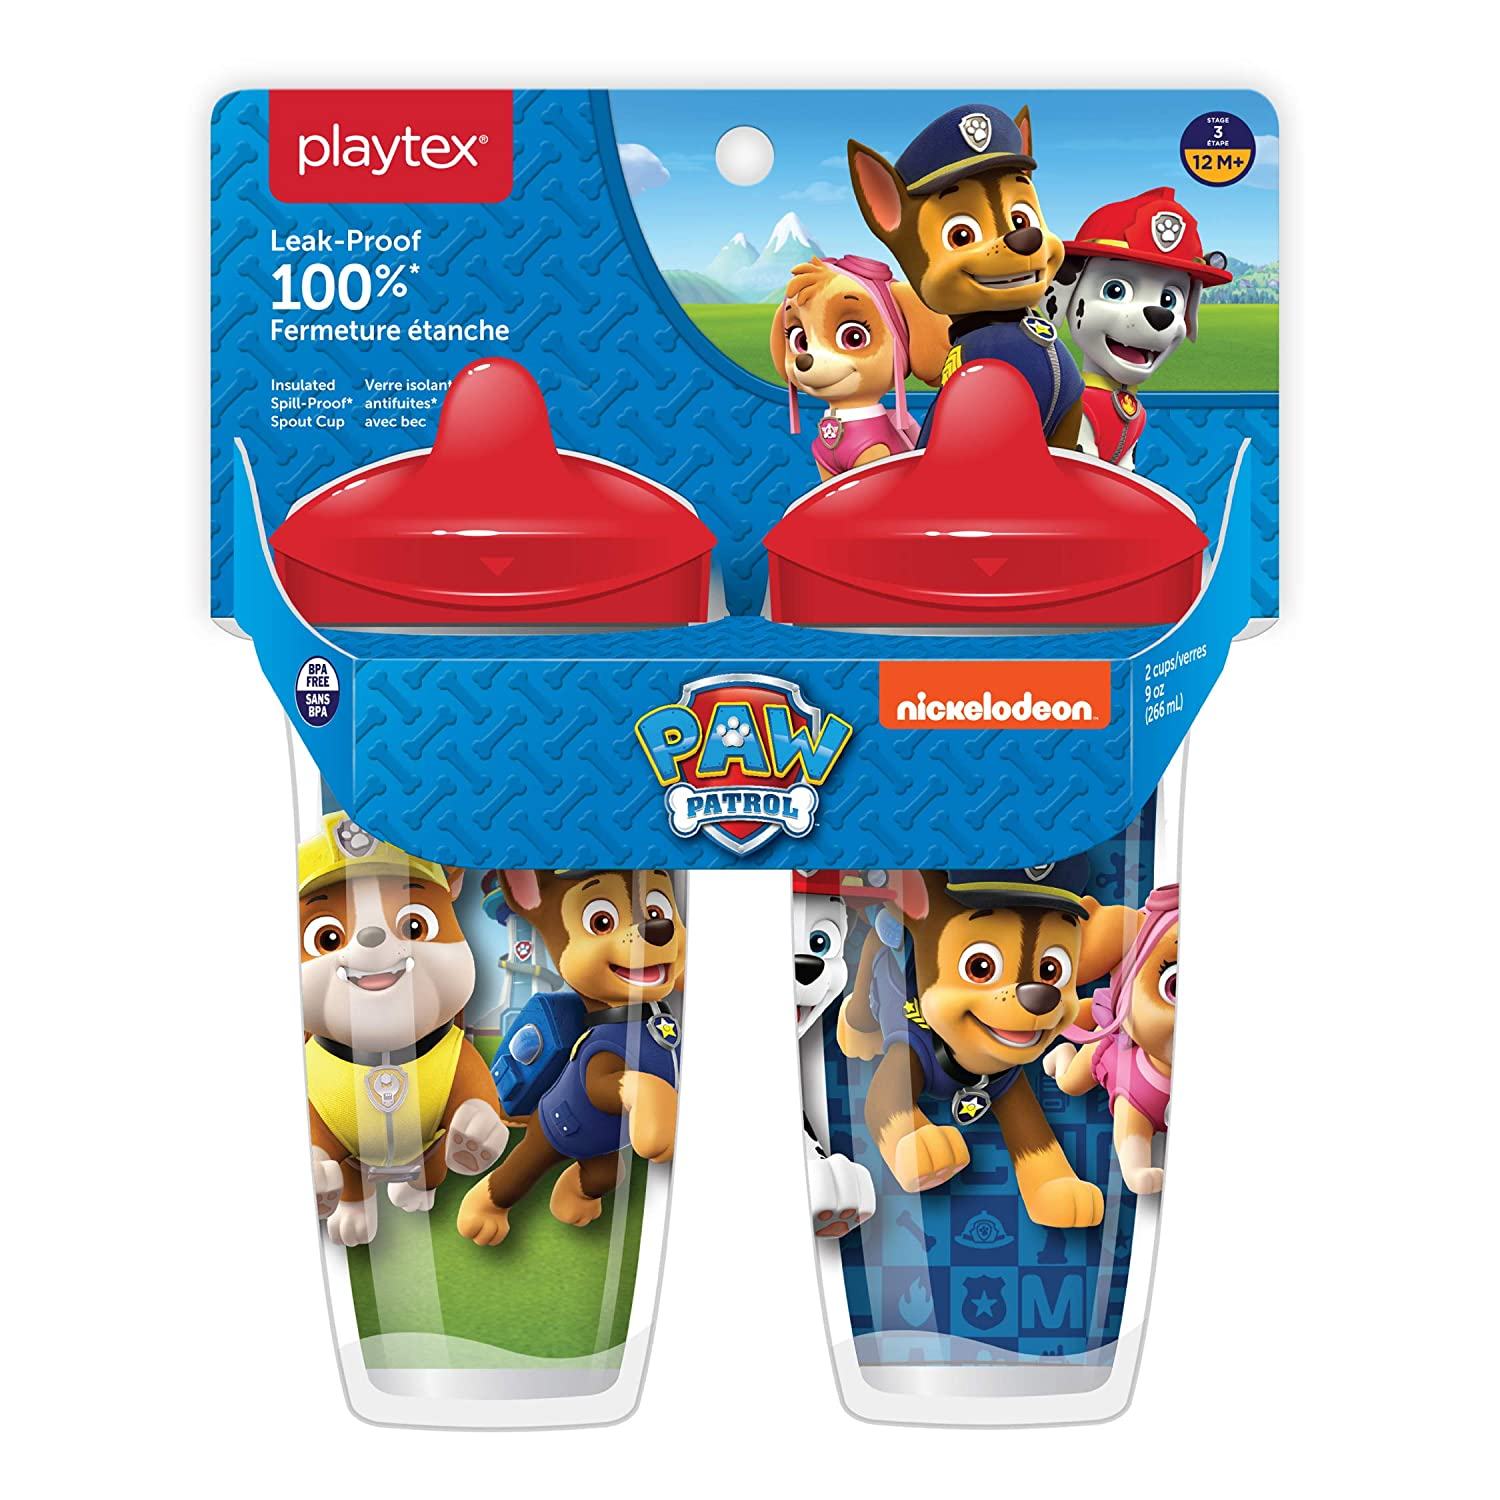 Leak-Proof 9 Ounce Pack of 2 Break-Proof/Spout Cup for Boys Playtex Sipsters Stage 3 Paw Patrol Spill-Proof